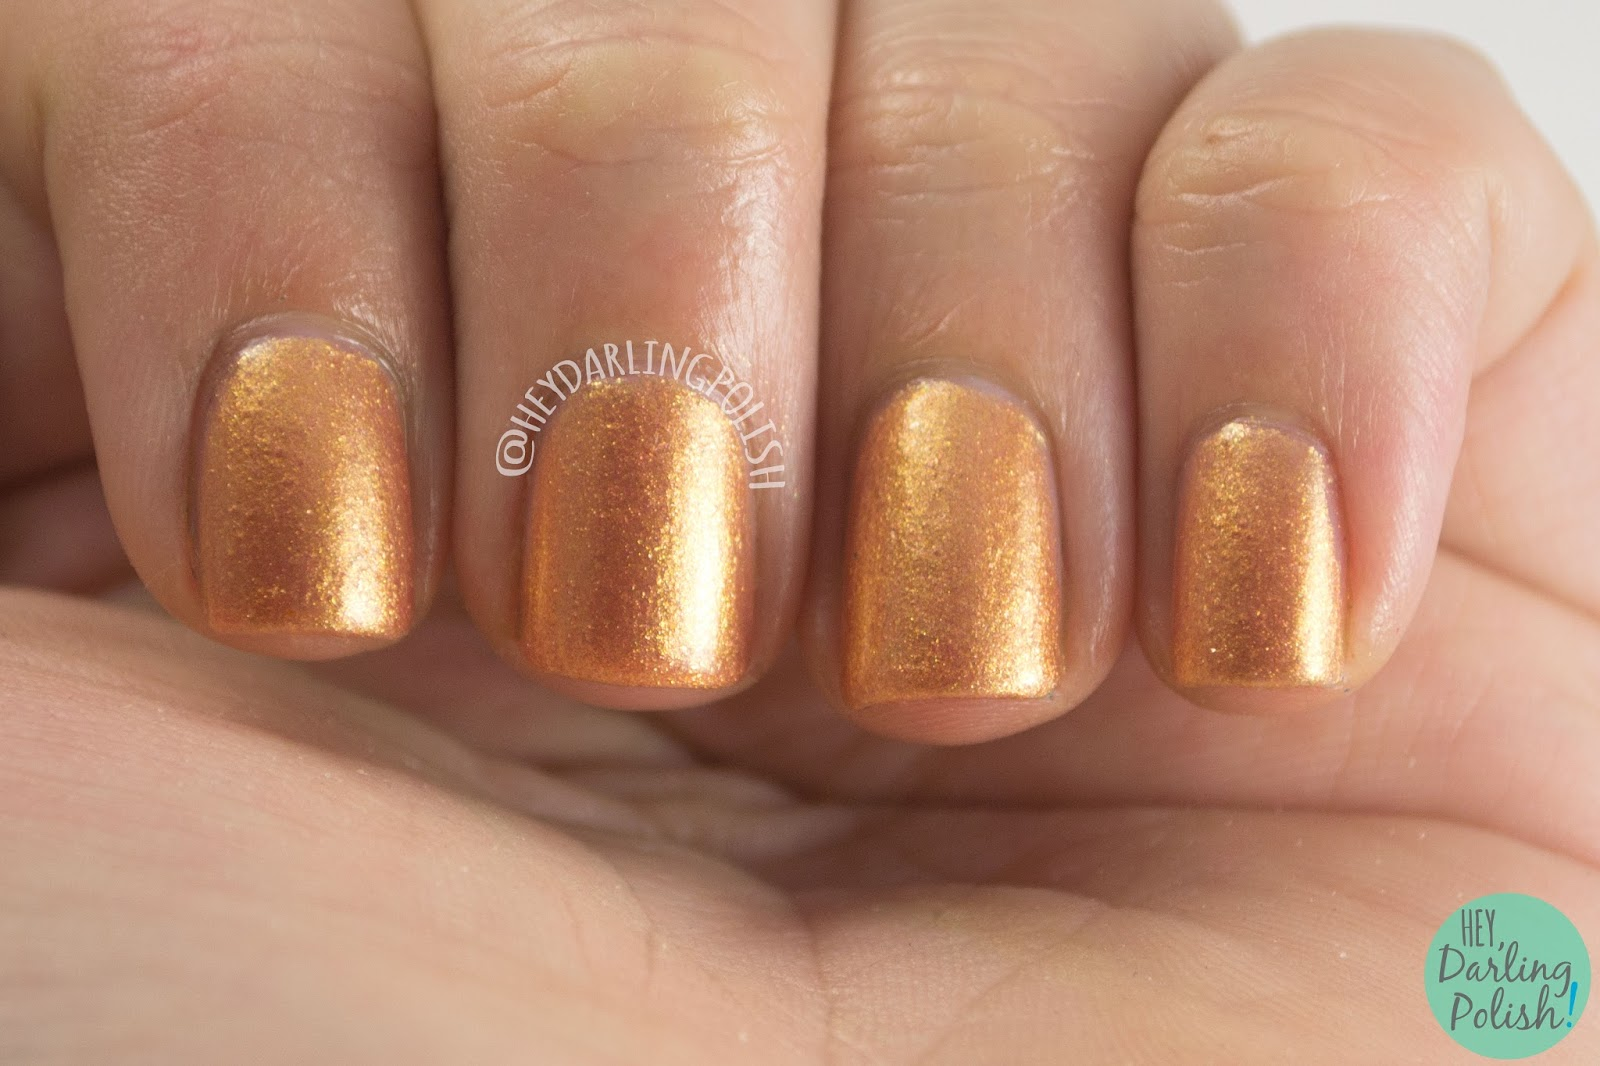 bronze, copper, my 2 cents, nails, nail polish, indie, indie polish, kitty polish, hey darling polish, swatch, shimmer